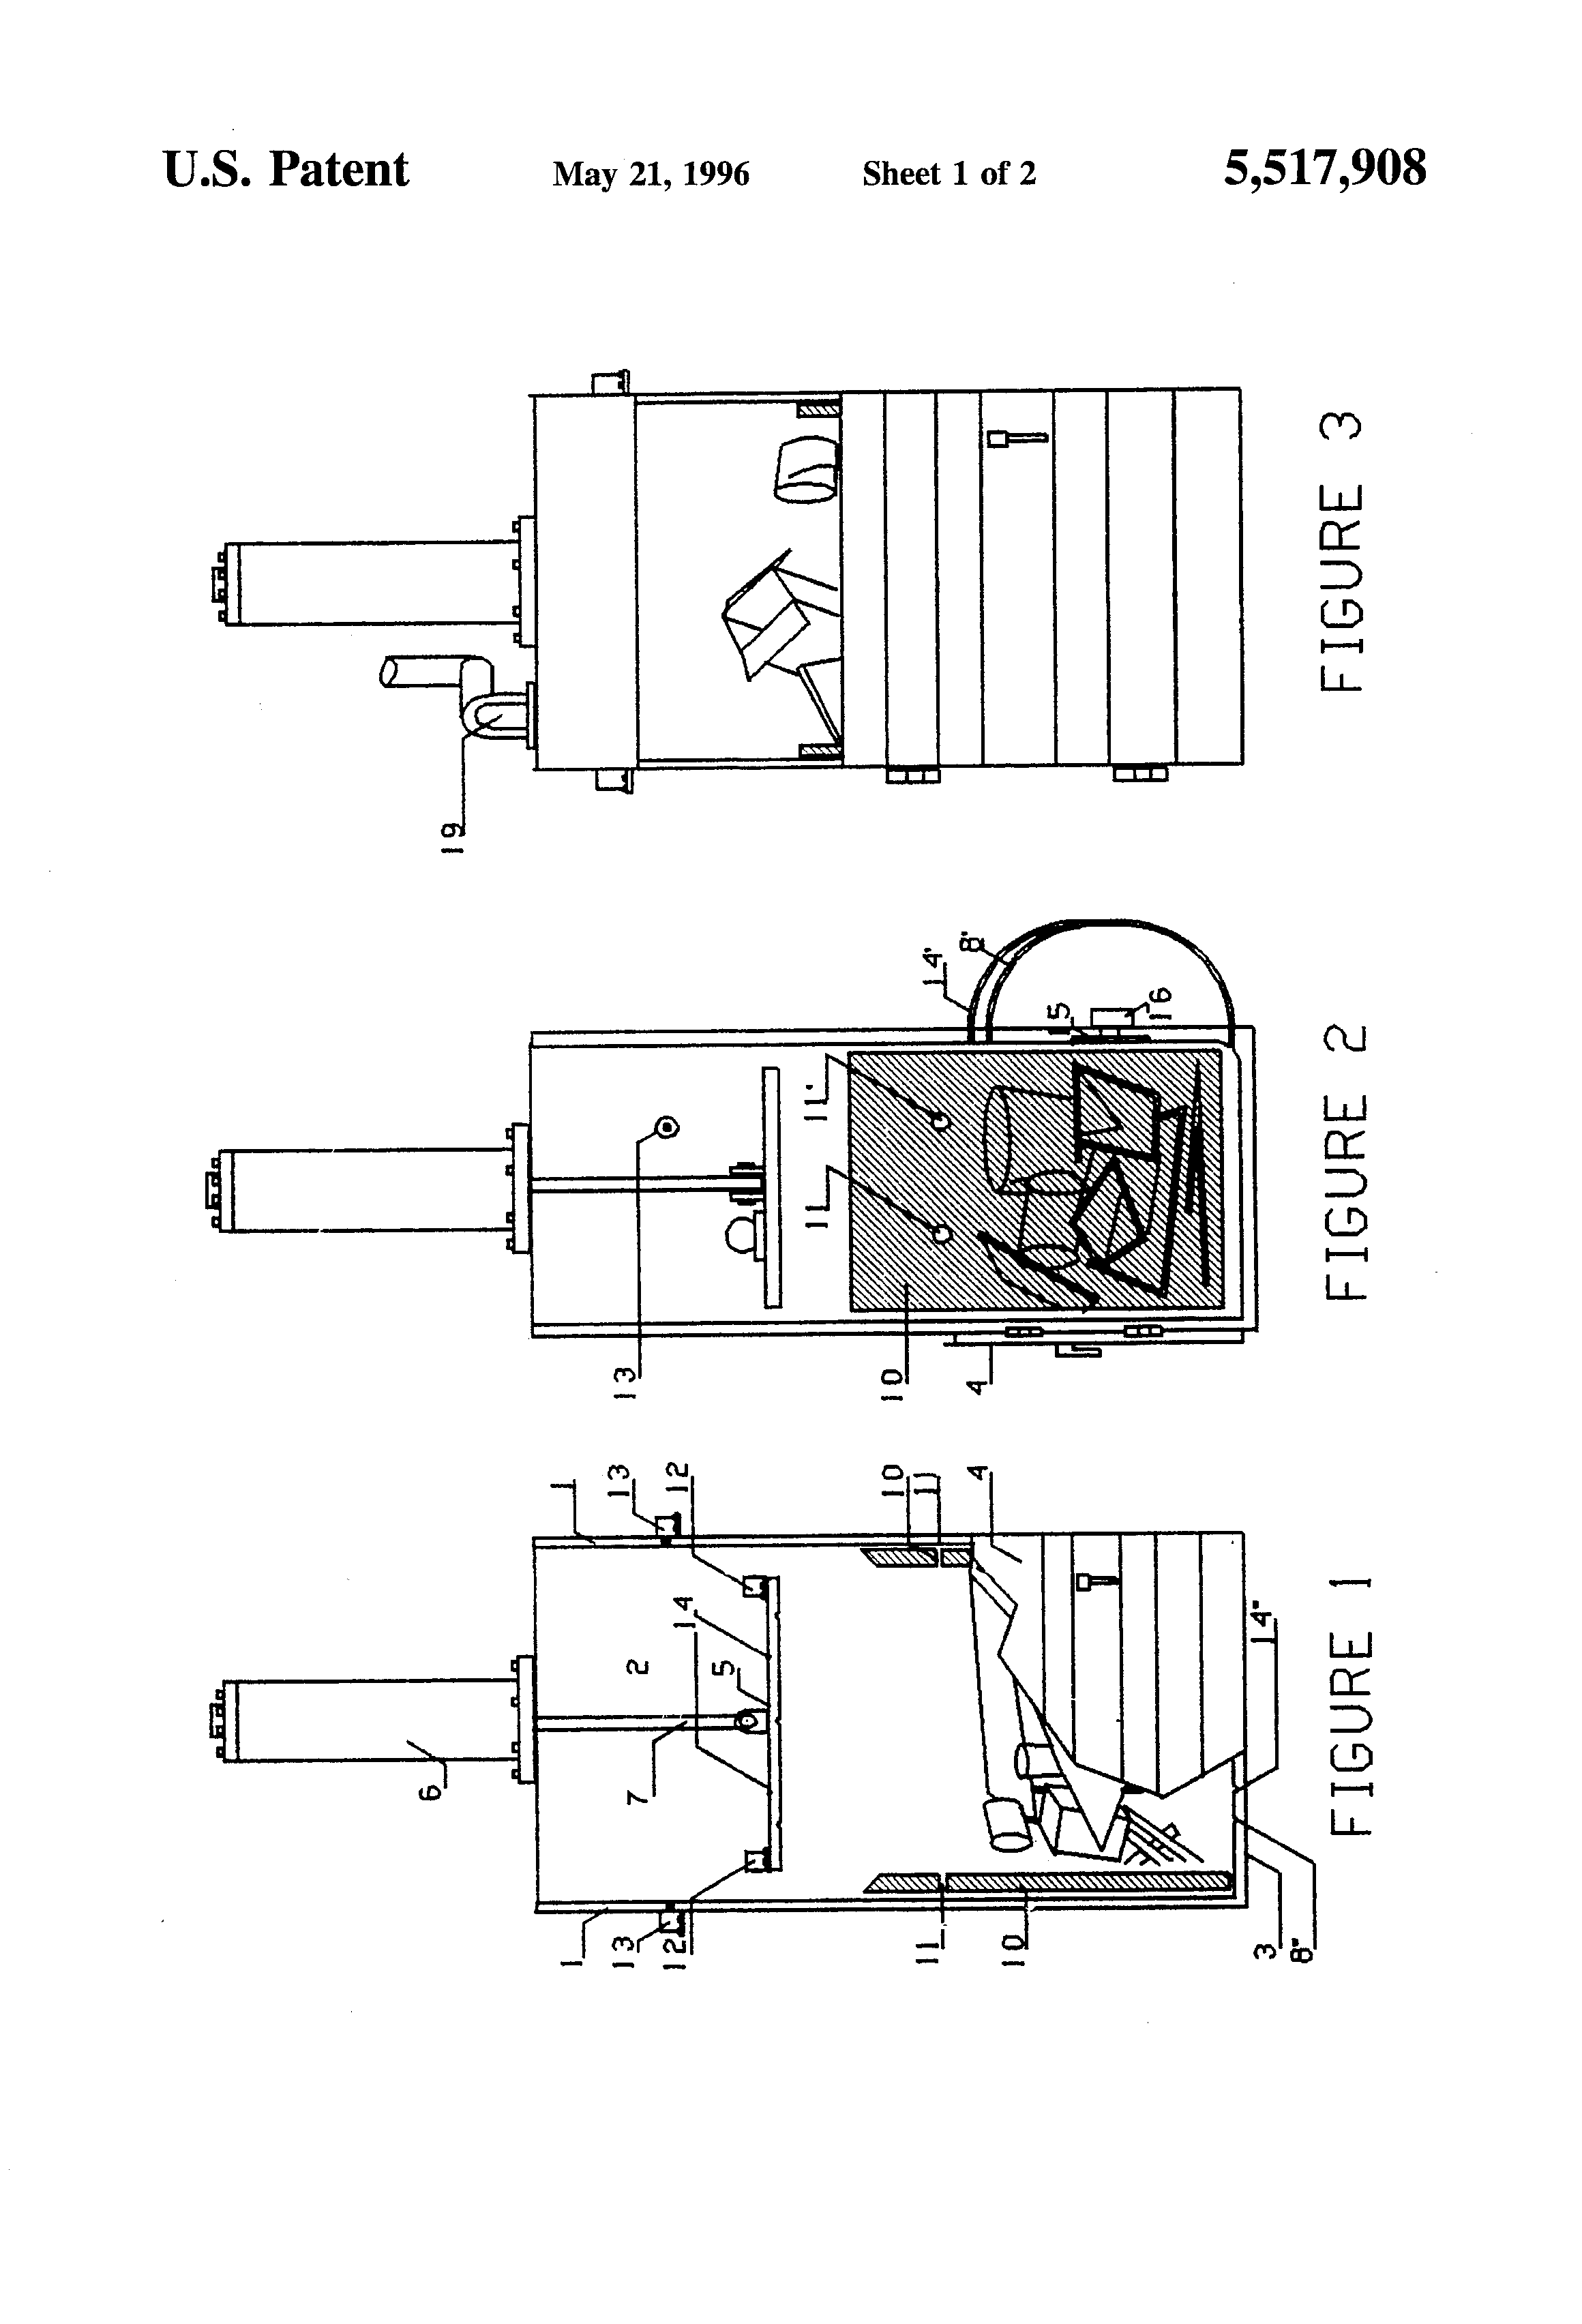 Brevet Us5517908 Baler For Compacting And Then Loading Hazardous Industrial Waste Compactors Wiring Diagrams Patent Drawing